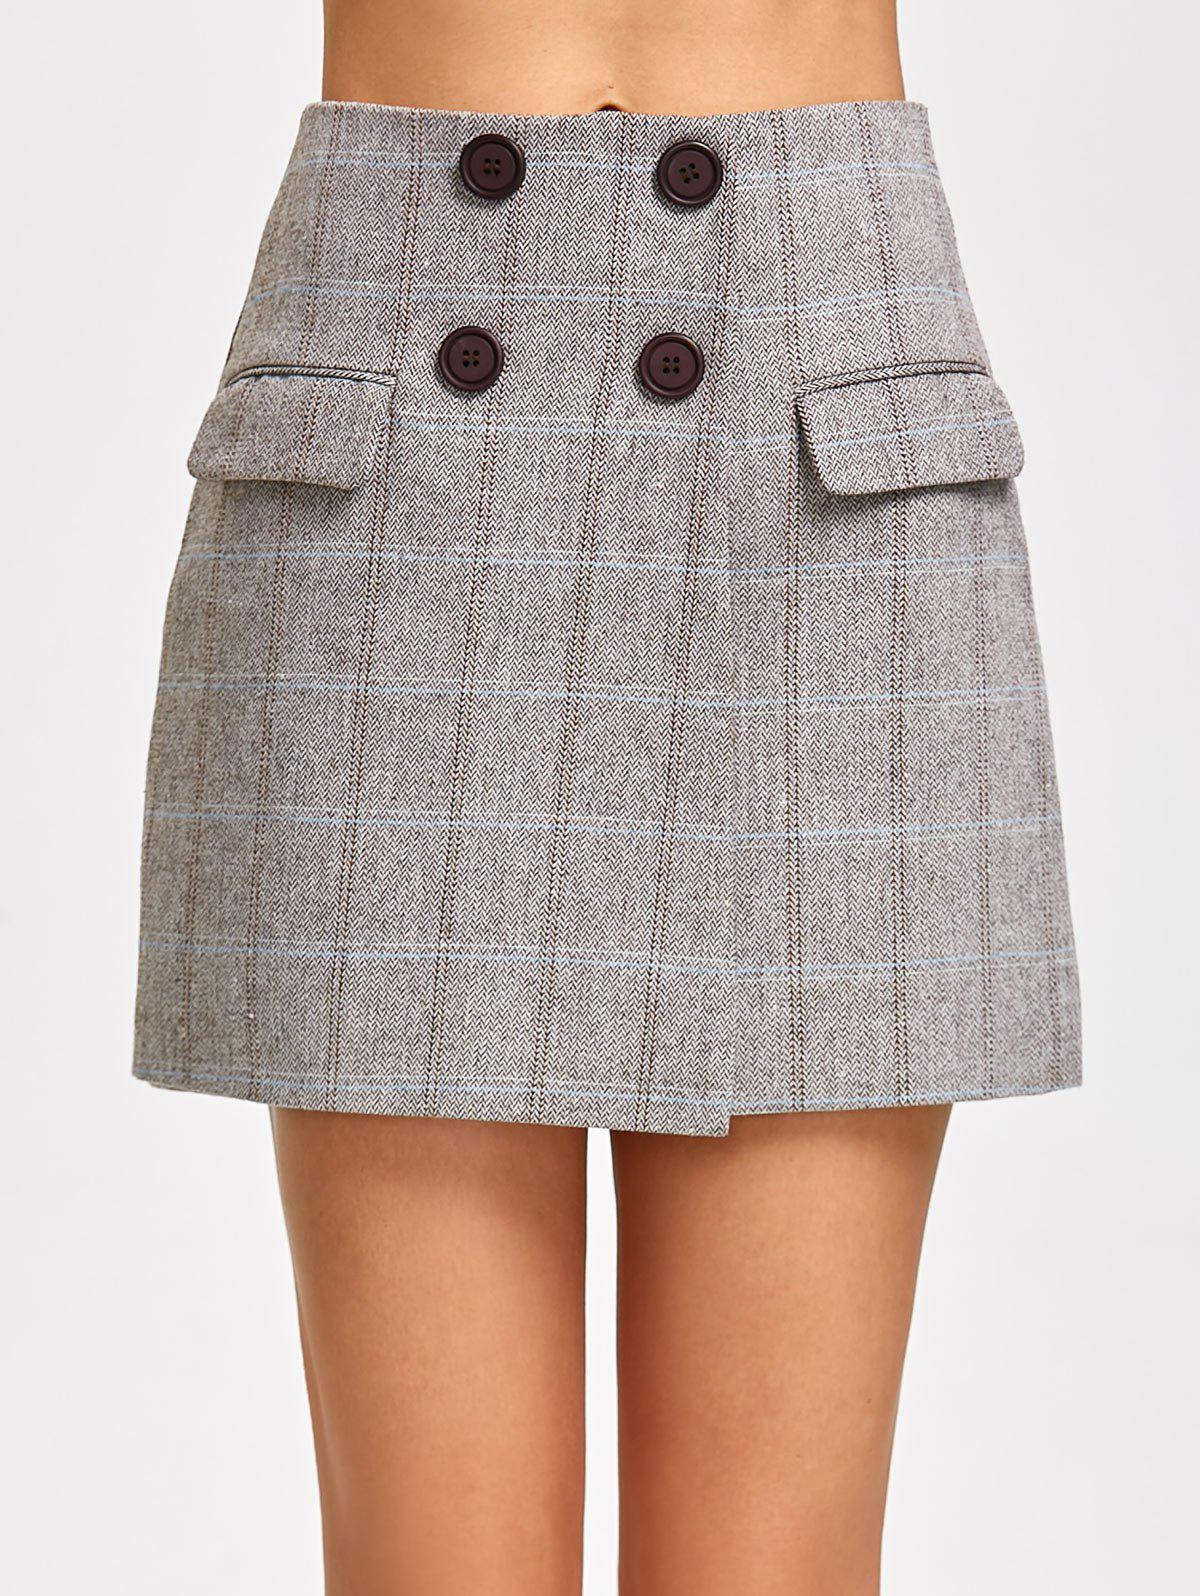 High Waist Double Breasted Mini Skirt - GRAY L